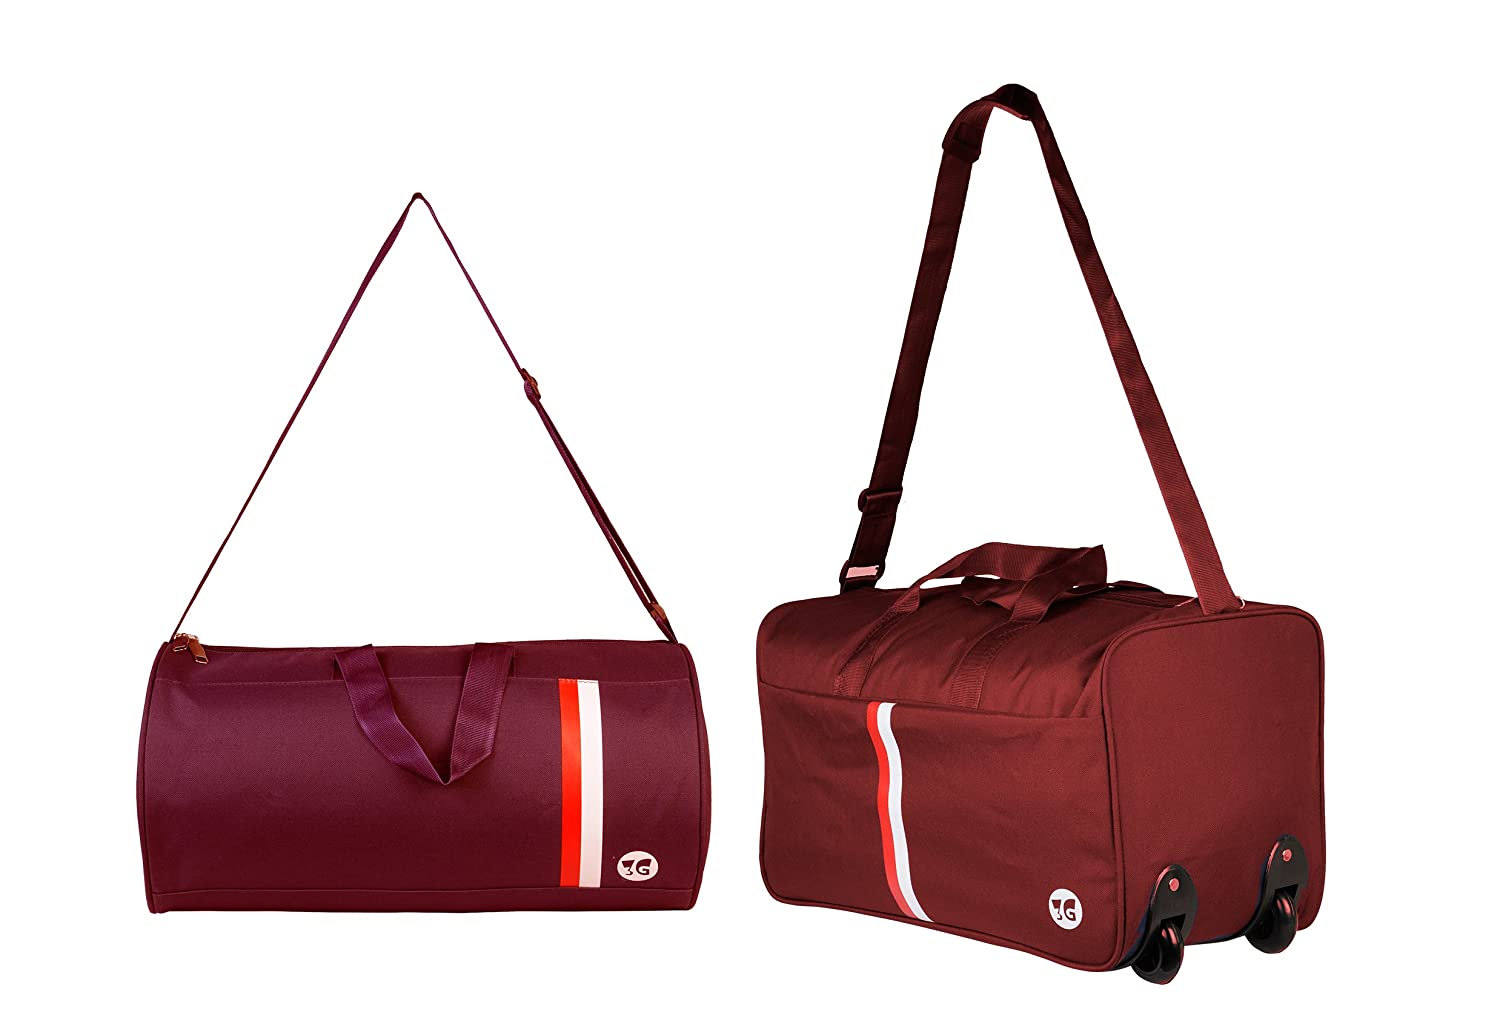 99bccbe29 3G Polyester Small-inch Strolley Duffle Bag Combo (Maroon): Amazon.in:  Bags, Wallets & Luggage